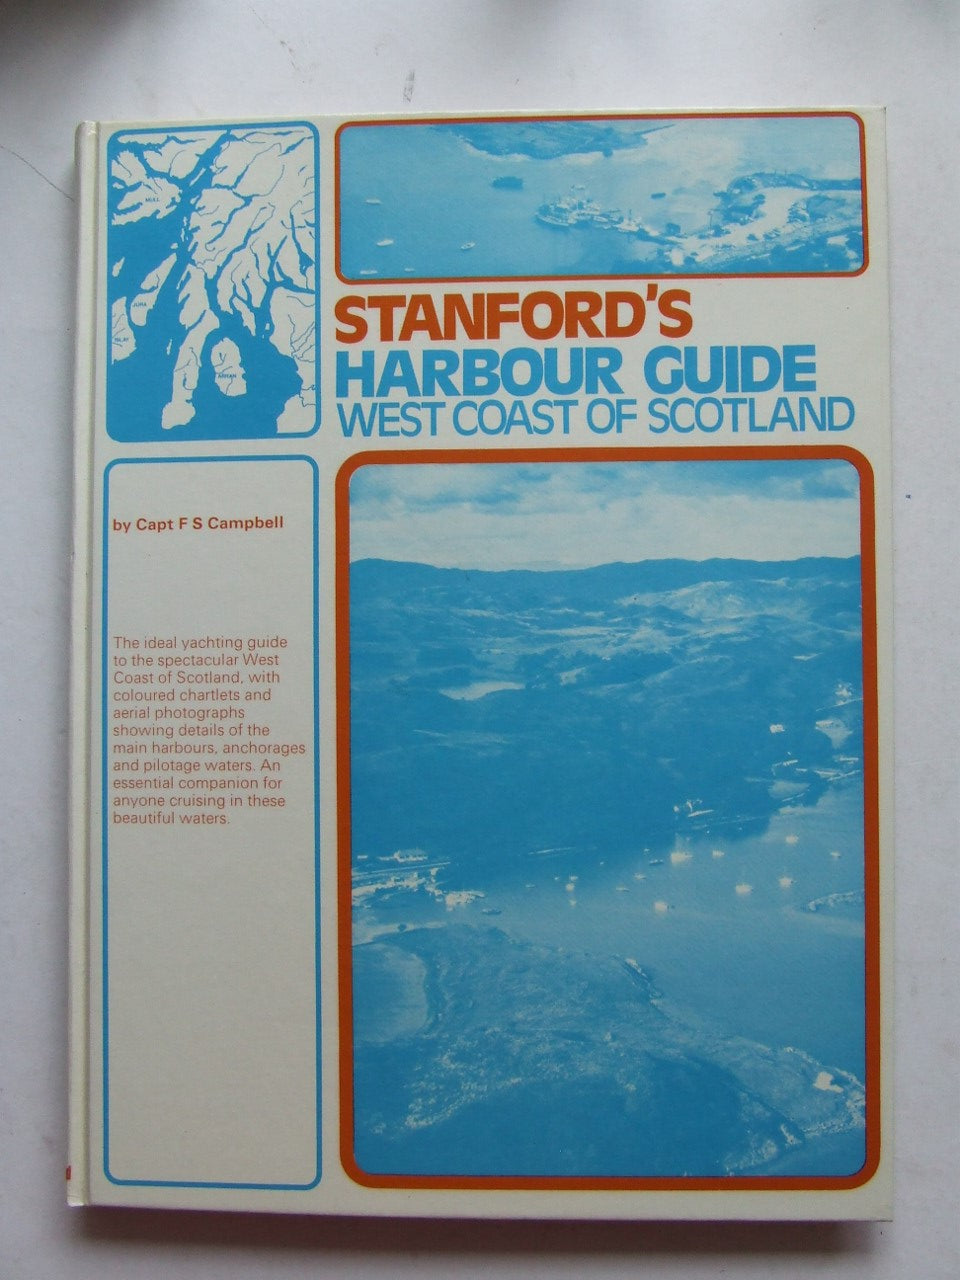 Stanford's Harbour Guide, West Coast of Scotland